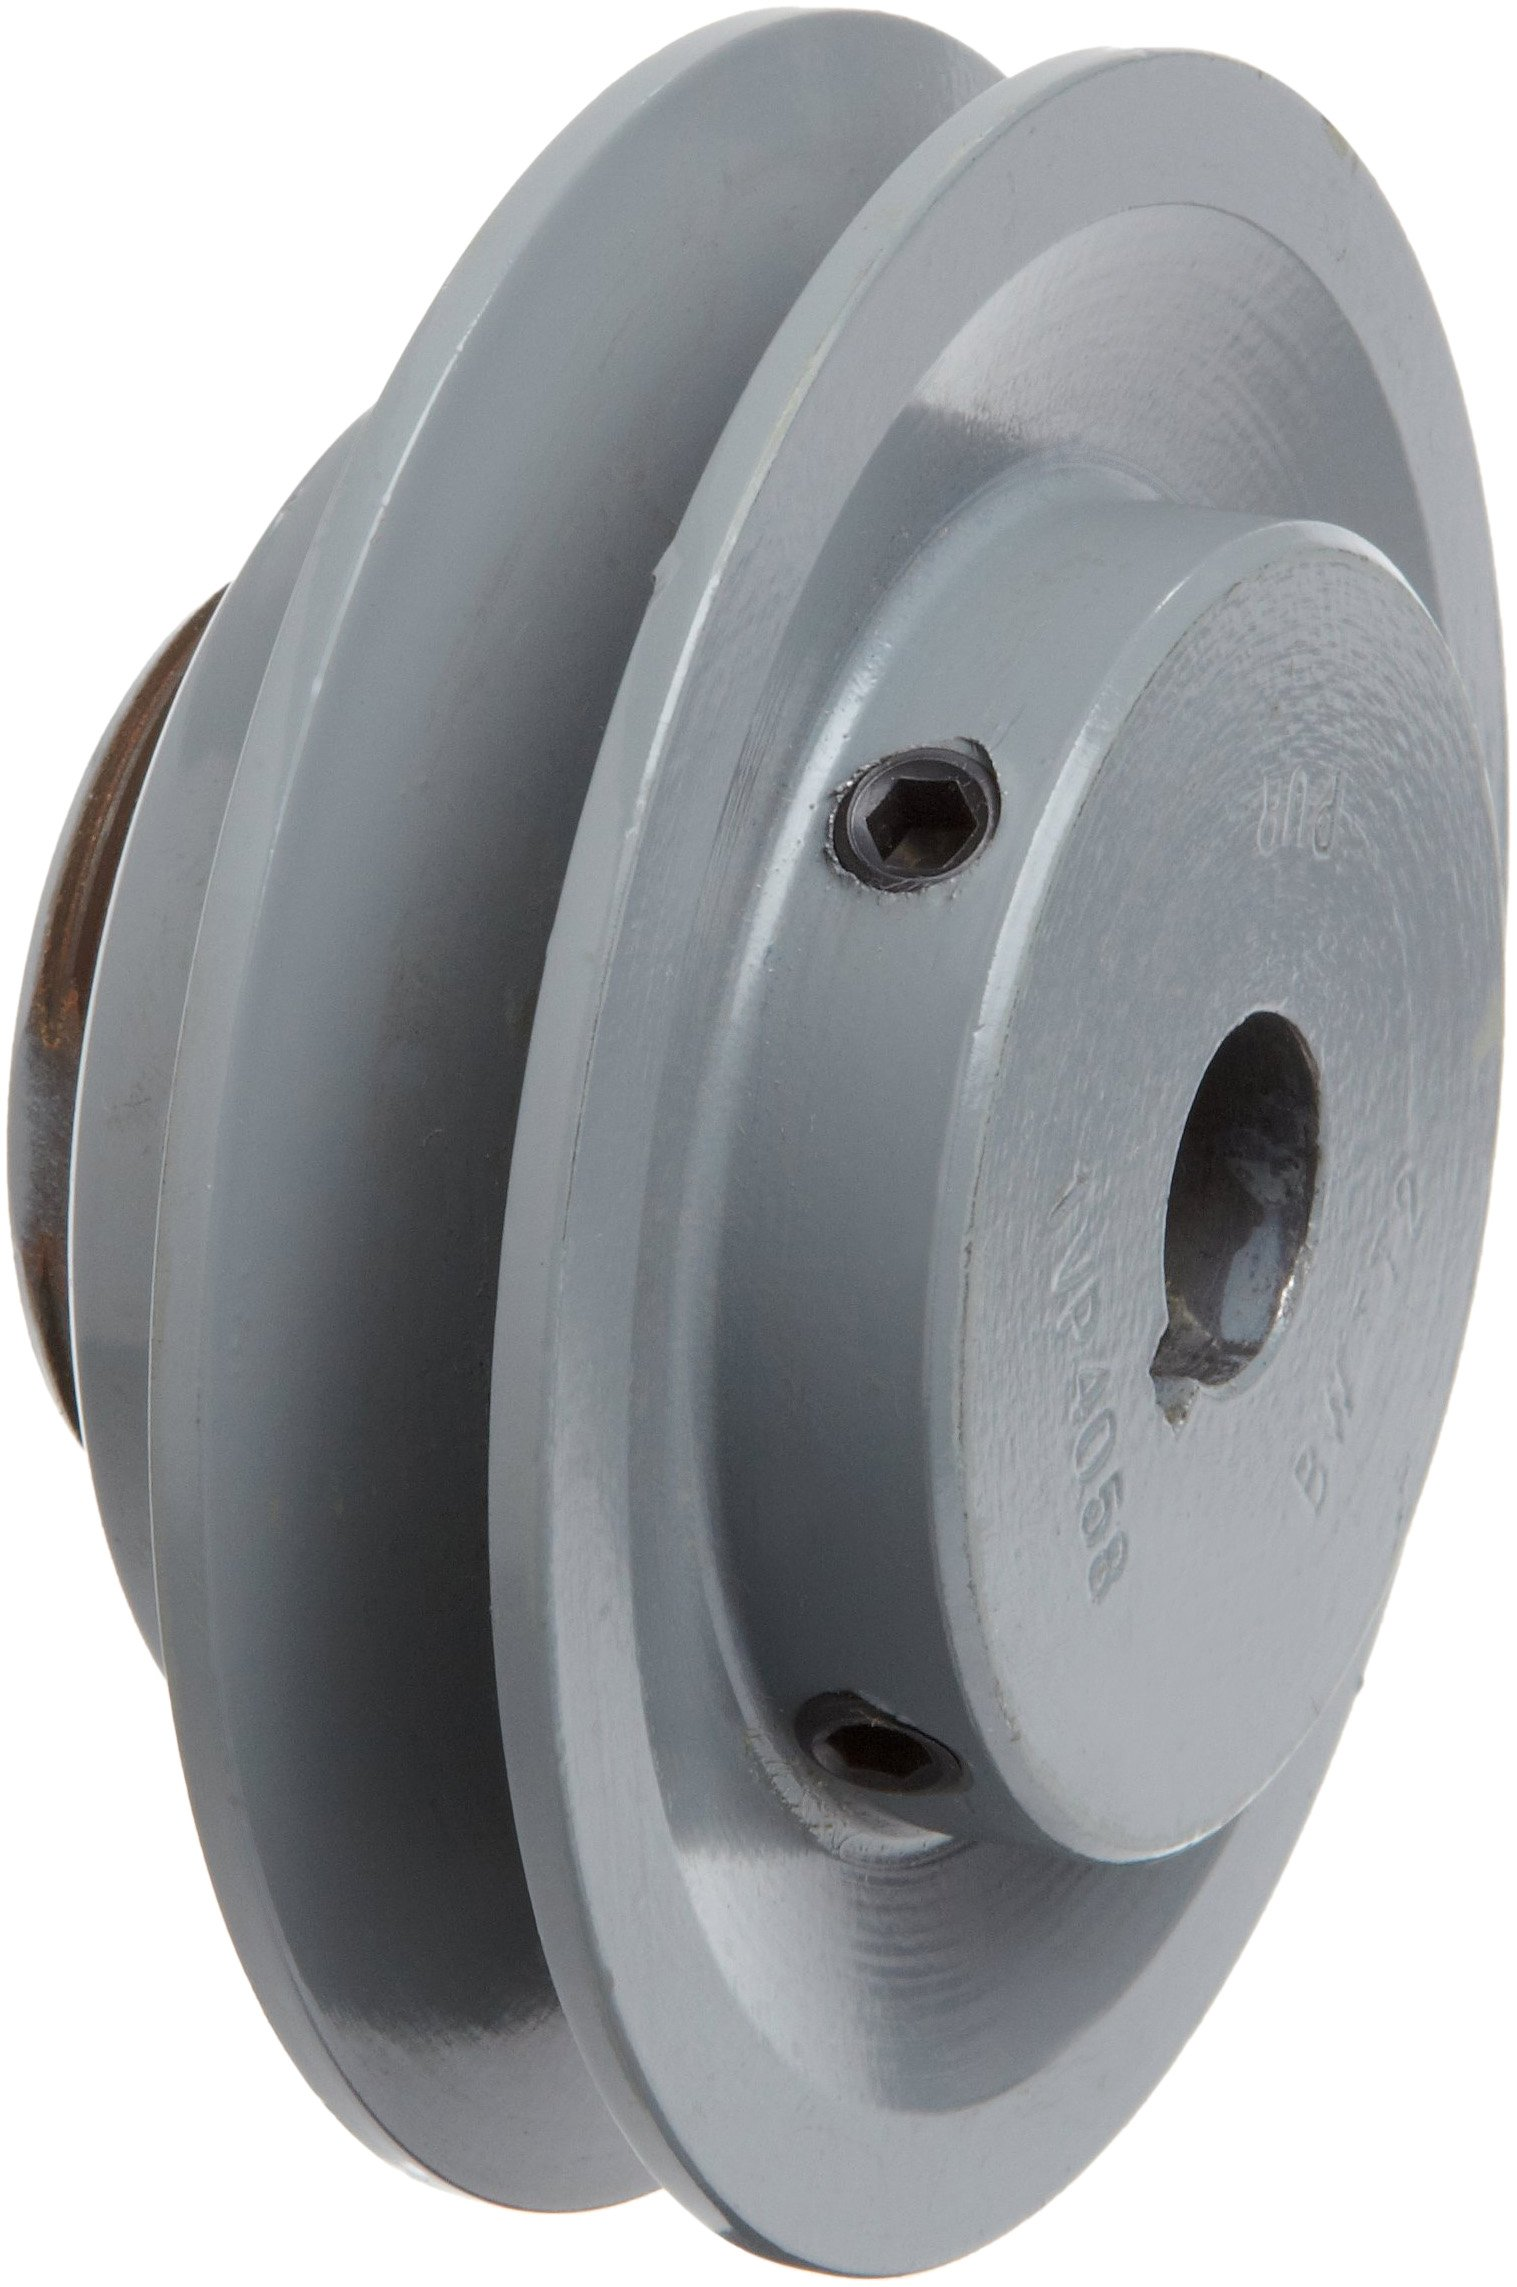 TB Woods 1VP40 5/8'' Bore Adjustable Pitch Sheave With 1 Groove